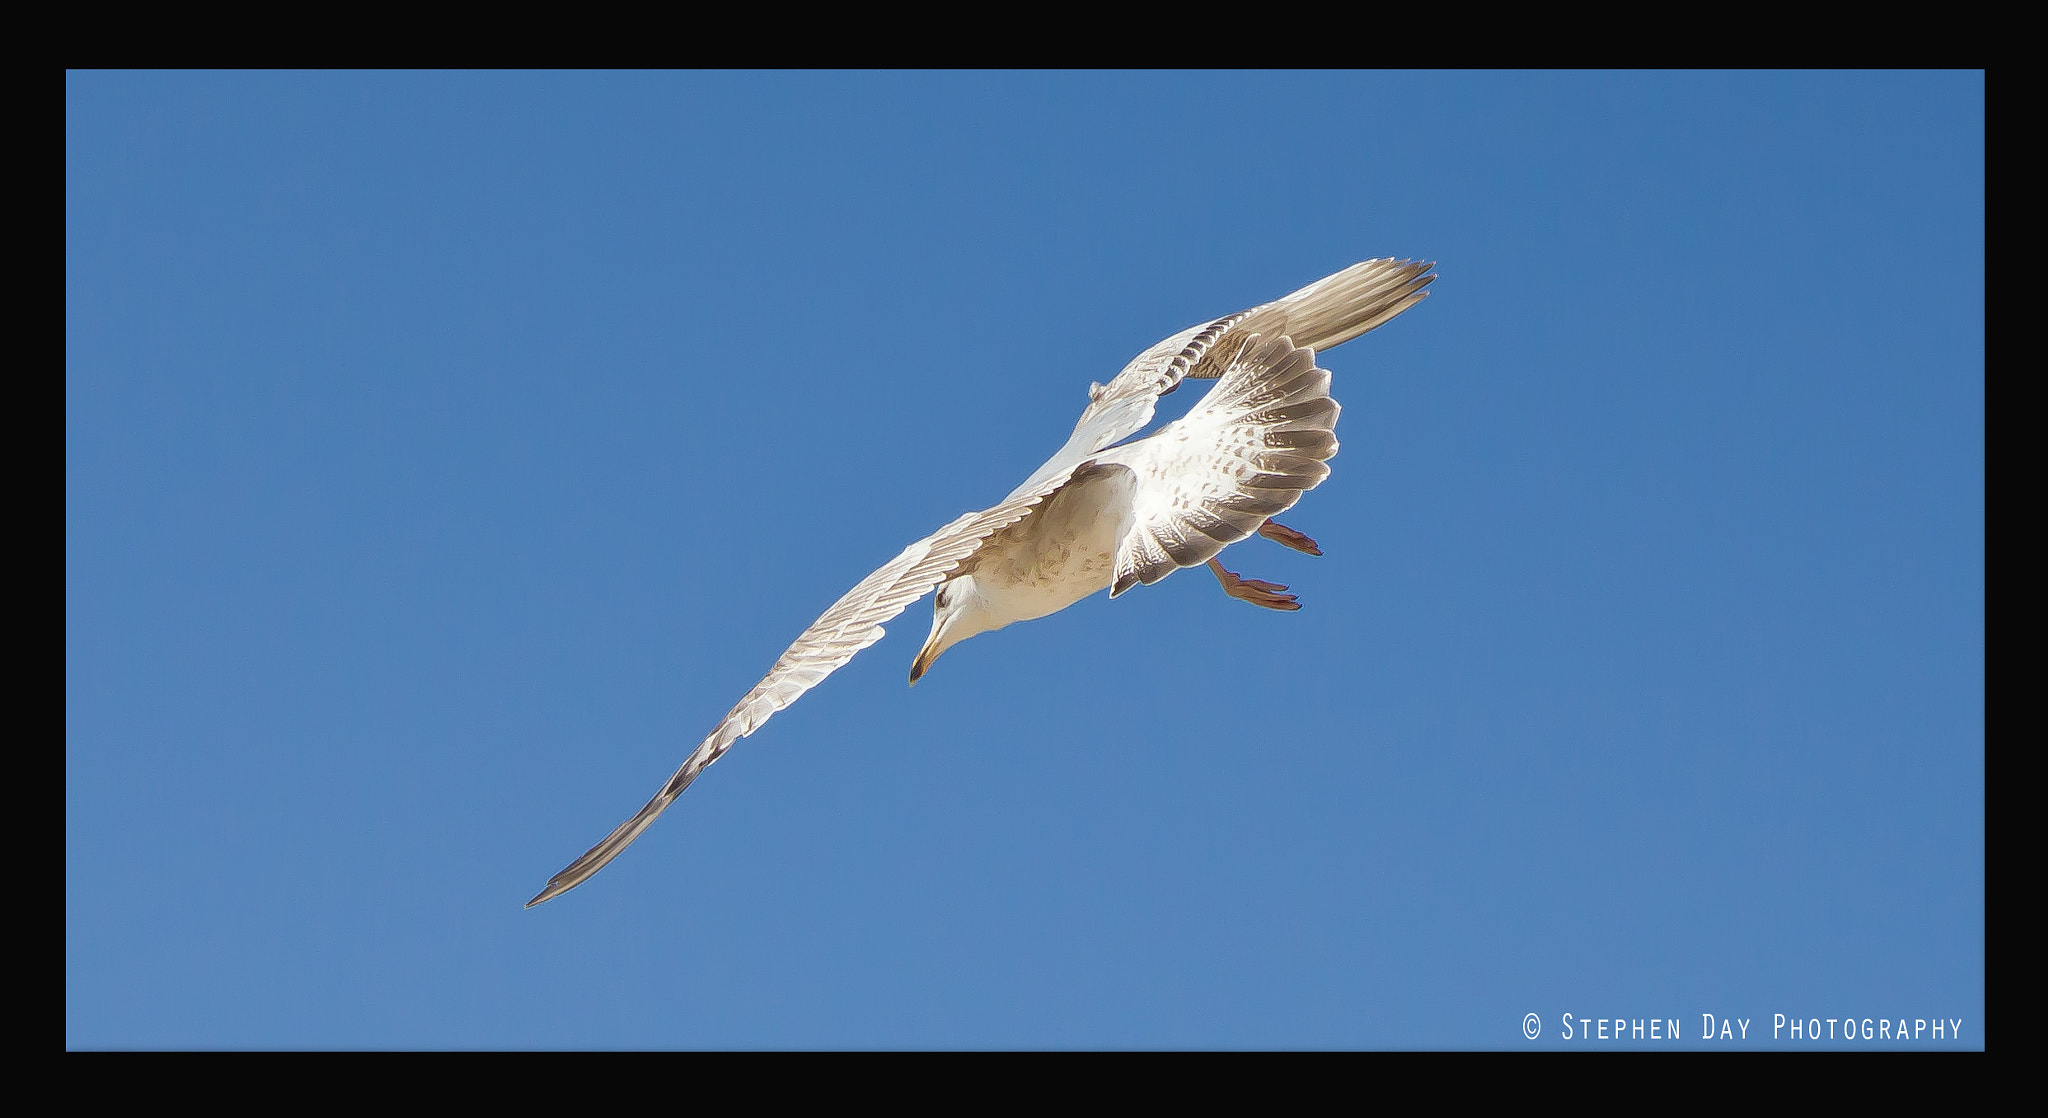 Photograph ''Engaged In Flight'' by Stephen Day Photography on 500px